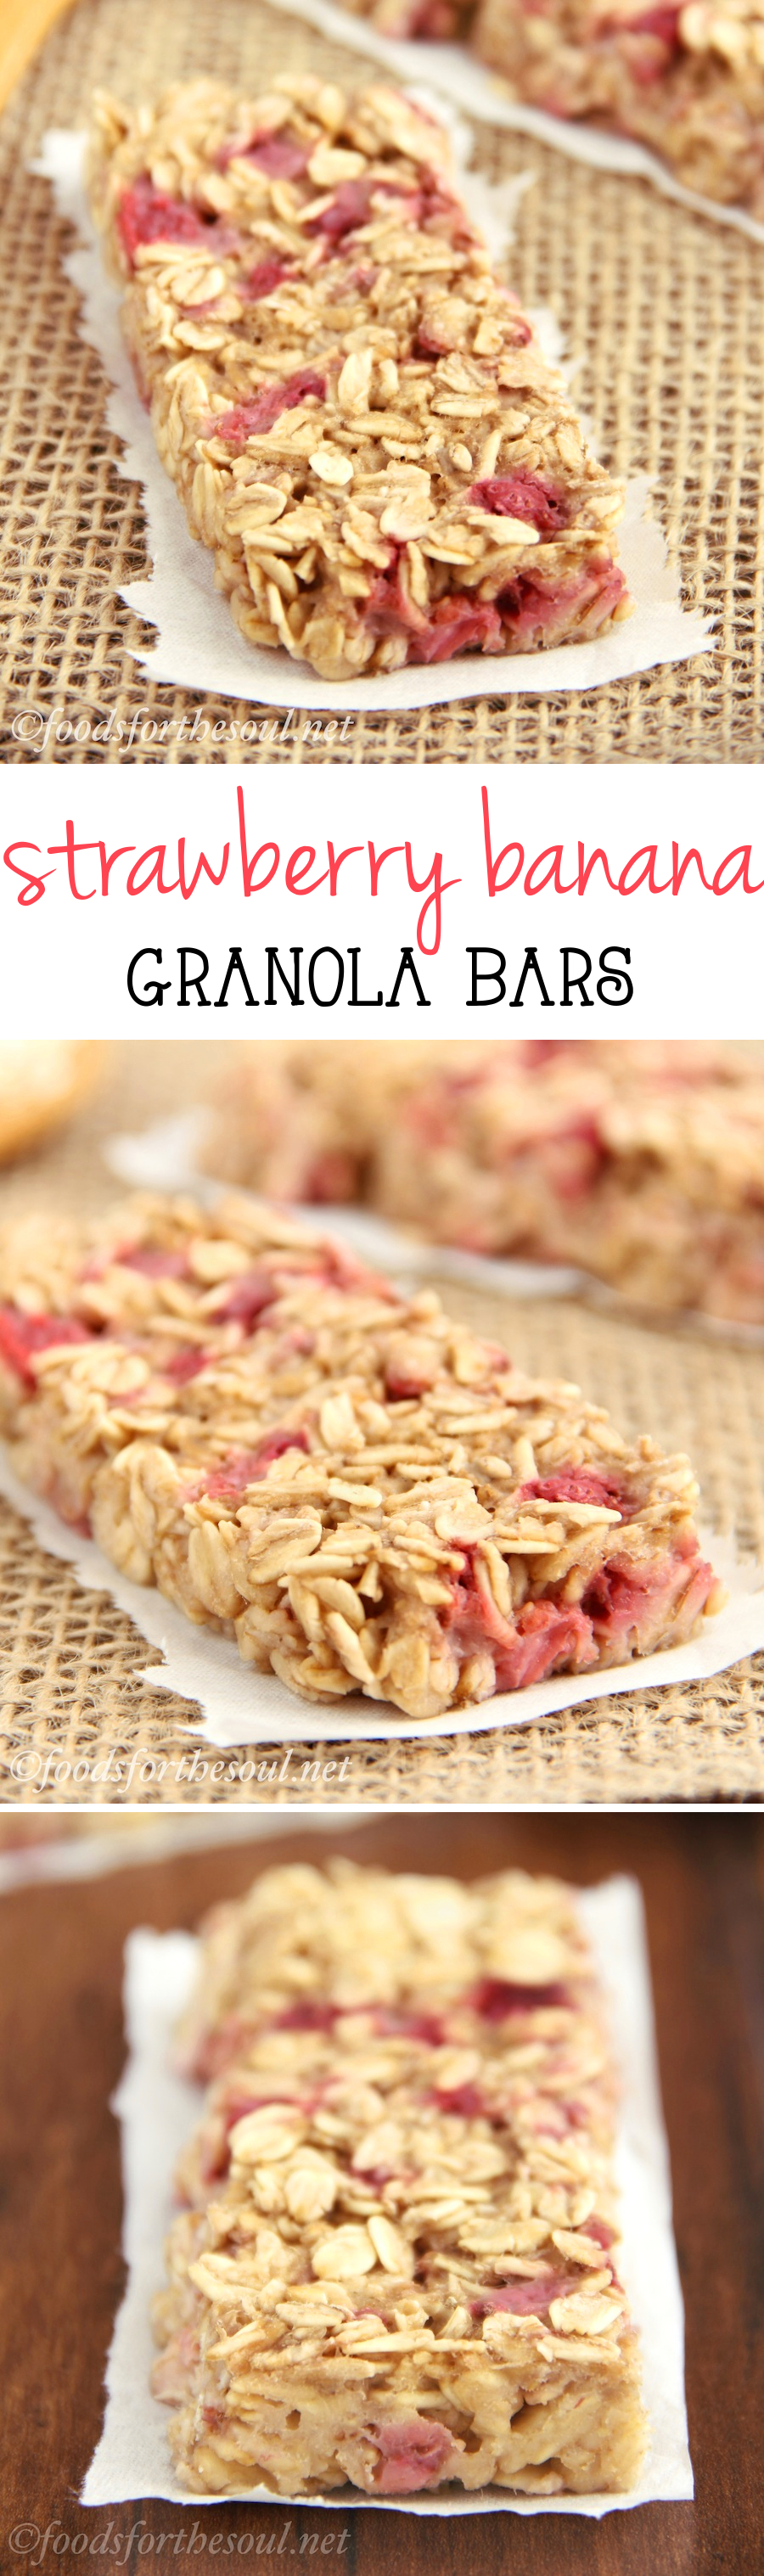 A simple recipe for skinny, clean-eating Strawberry Banana Granola Bars. So much better than the granola bars sold in stores!